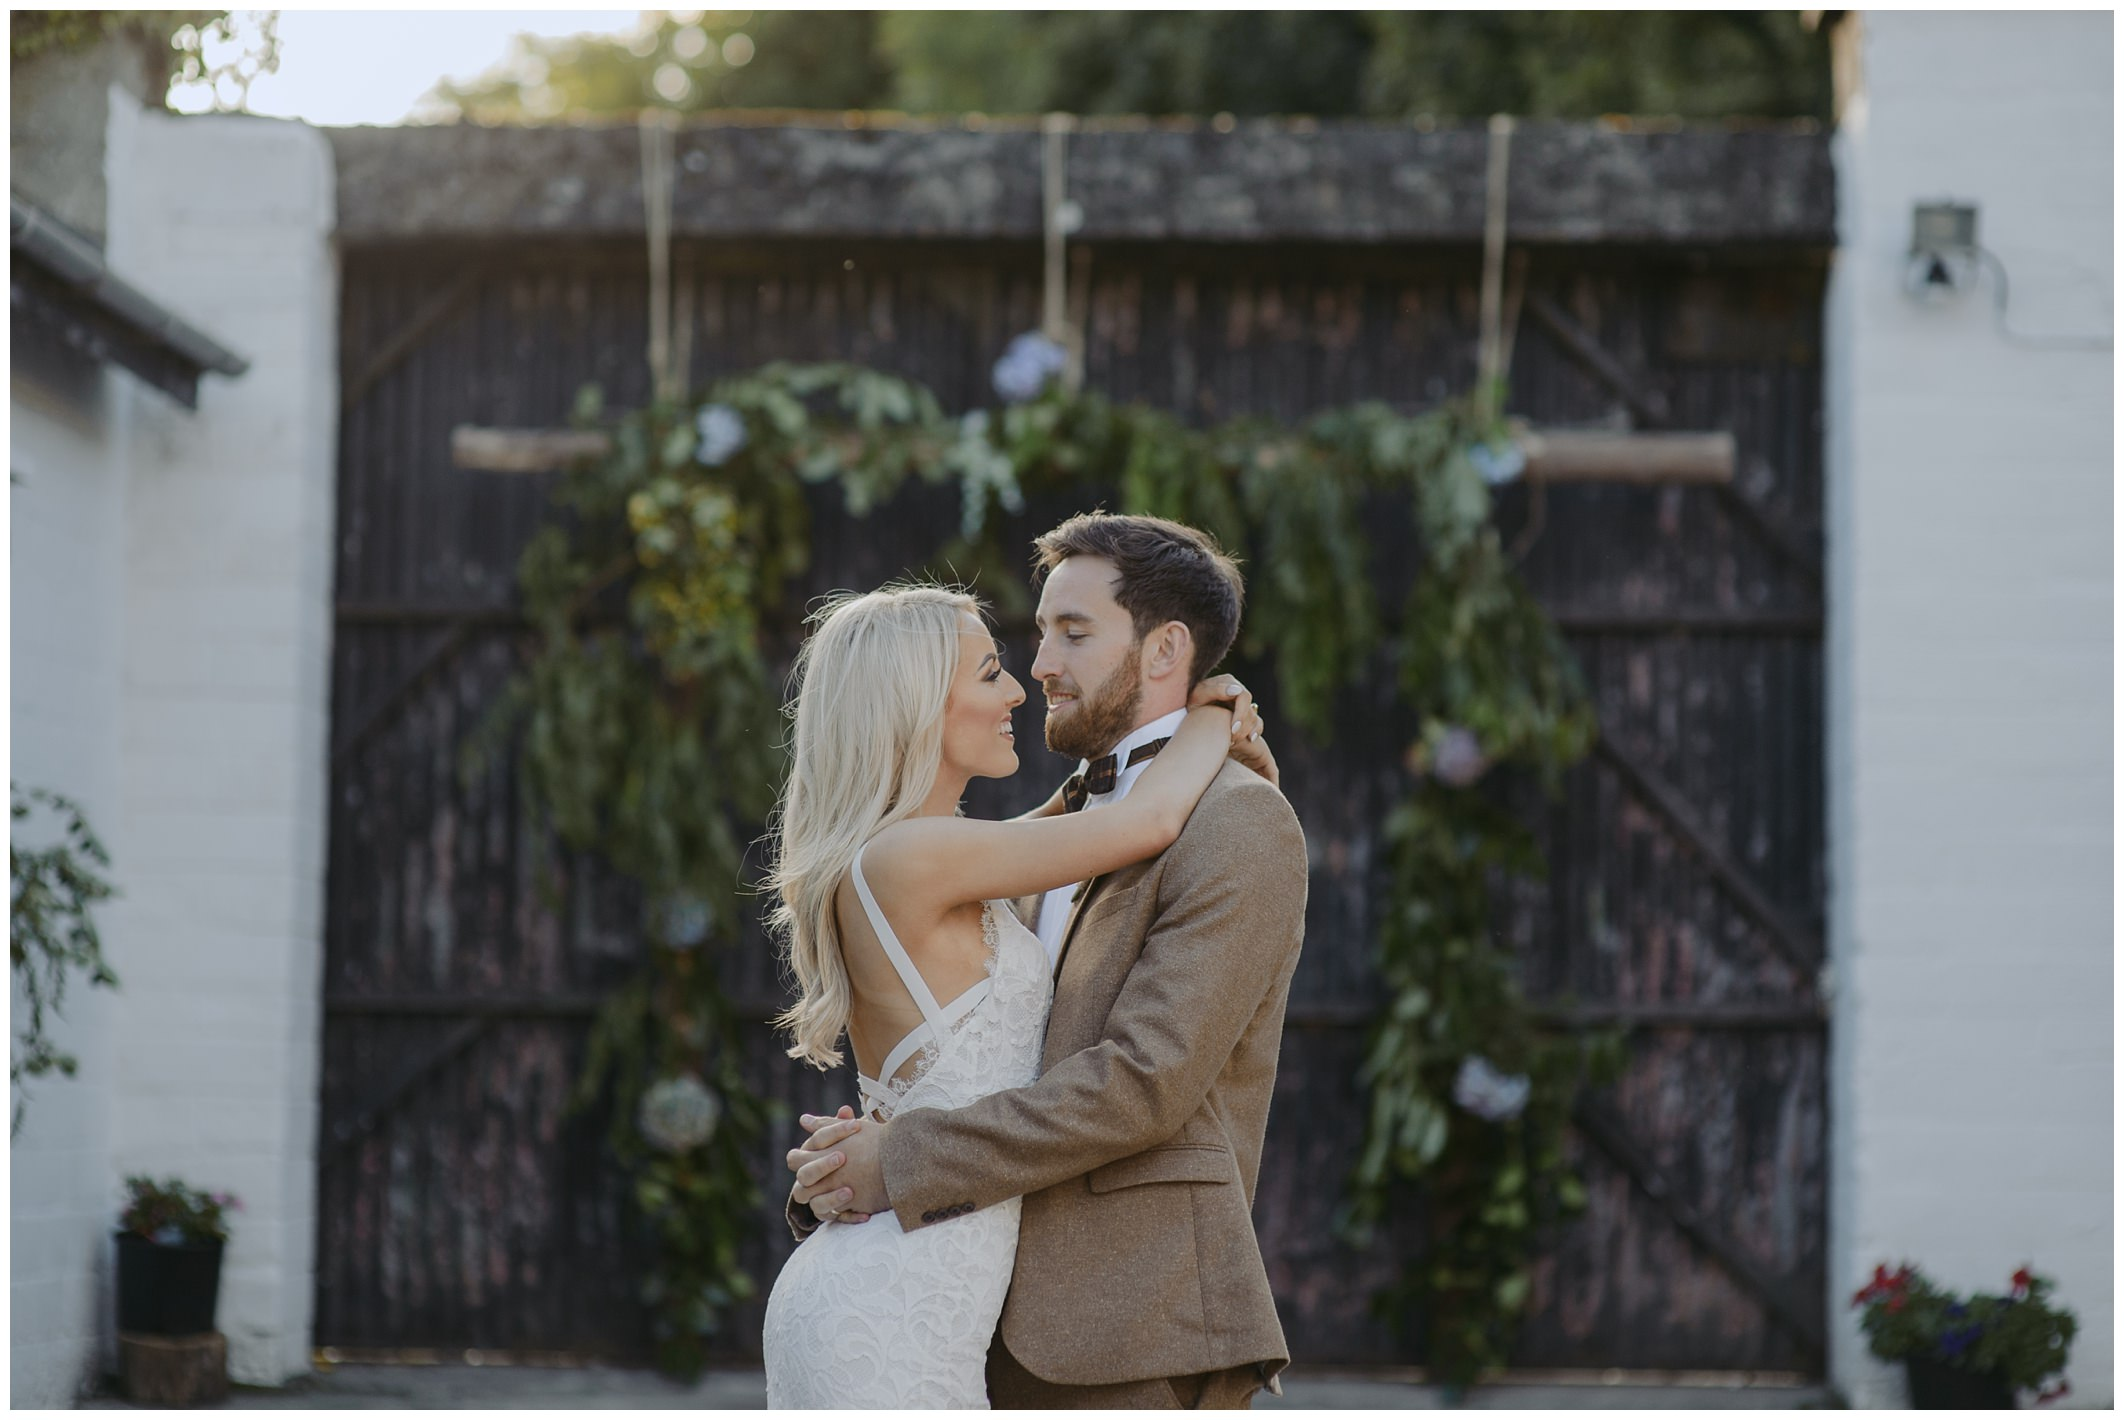 tara_neil_the_mill_alternative_quirky_wedding_jude_browne_photography_0183.jpg